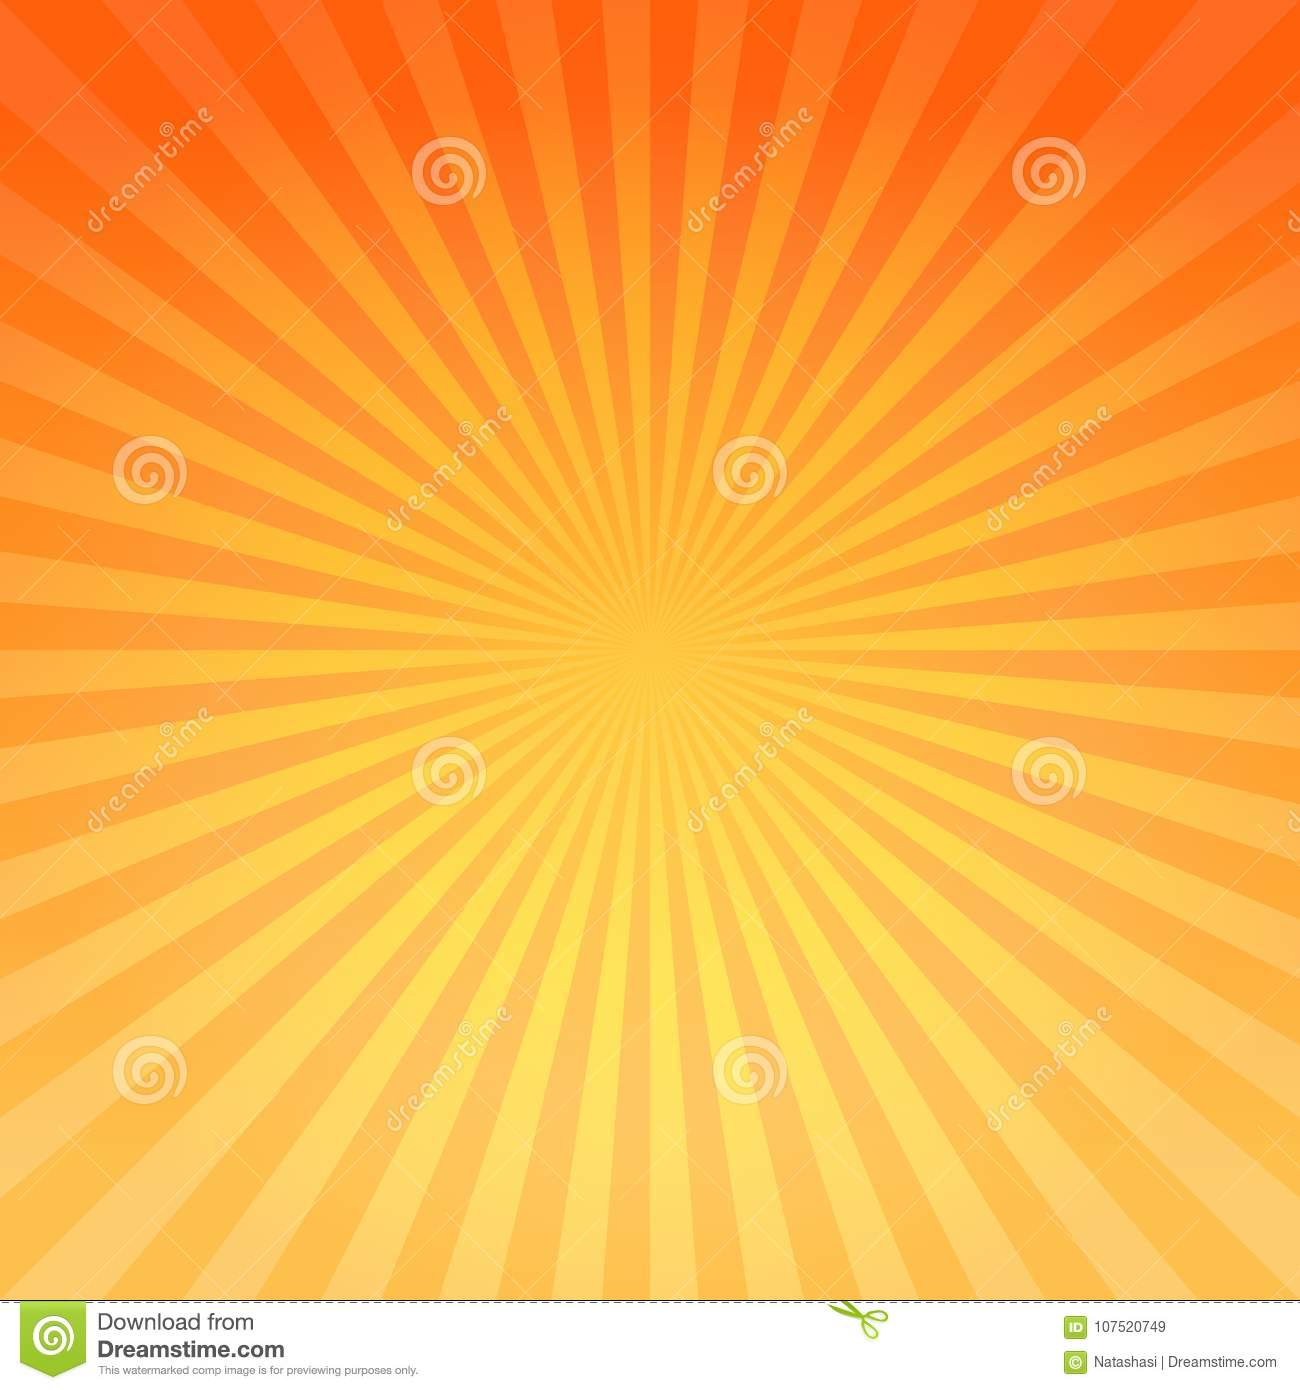 Abstract bright Yellow Orange gradient rays background. Vector EPS 10 cmyk